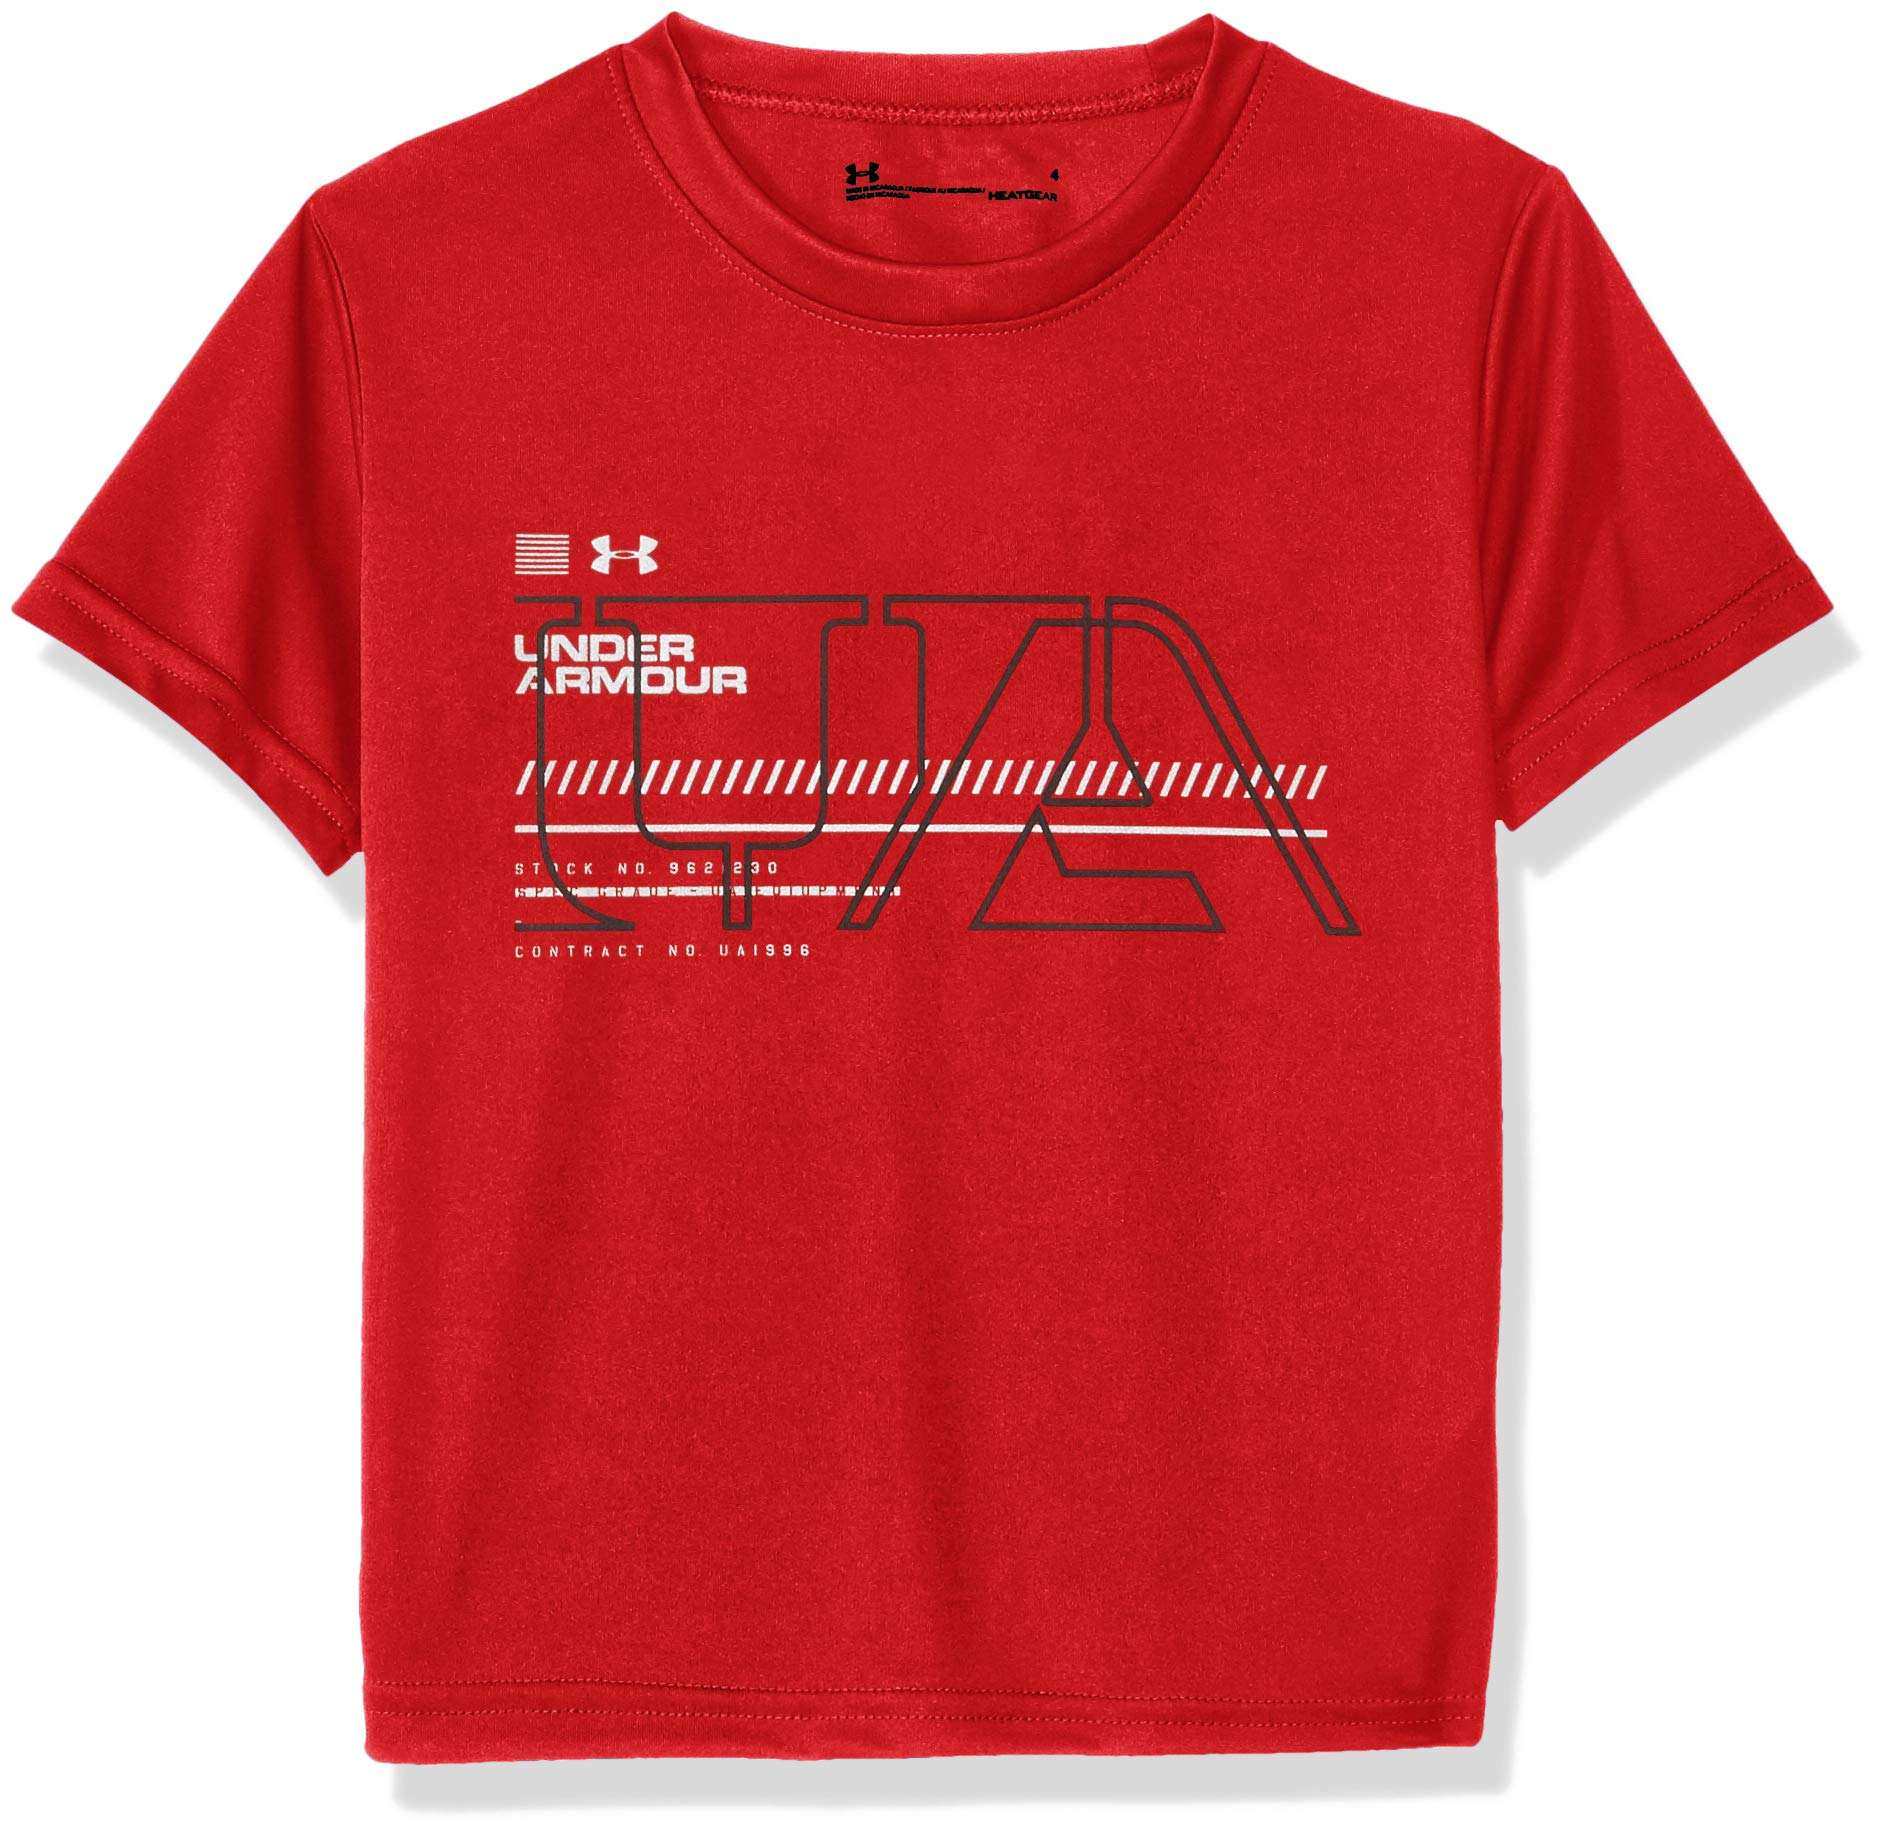 Under Armour Boys' Little Big Logo Short Sleeve Tee Shirt, Red-S192, 6 by Under Armour